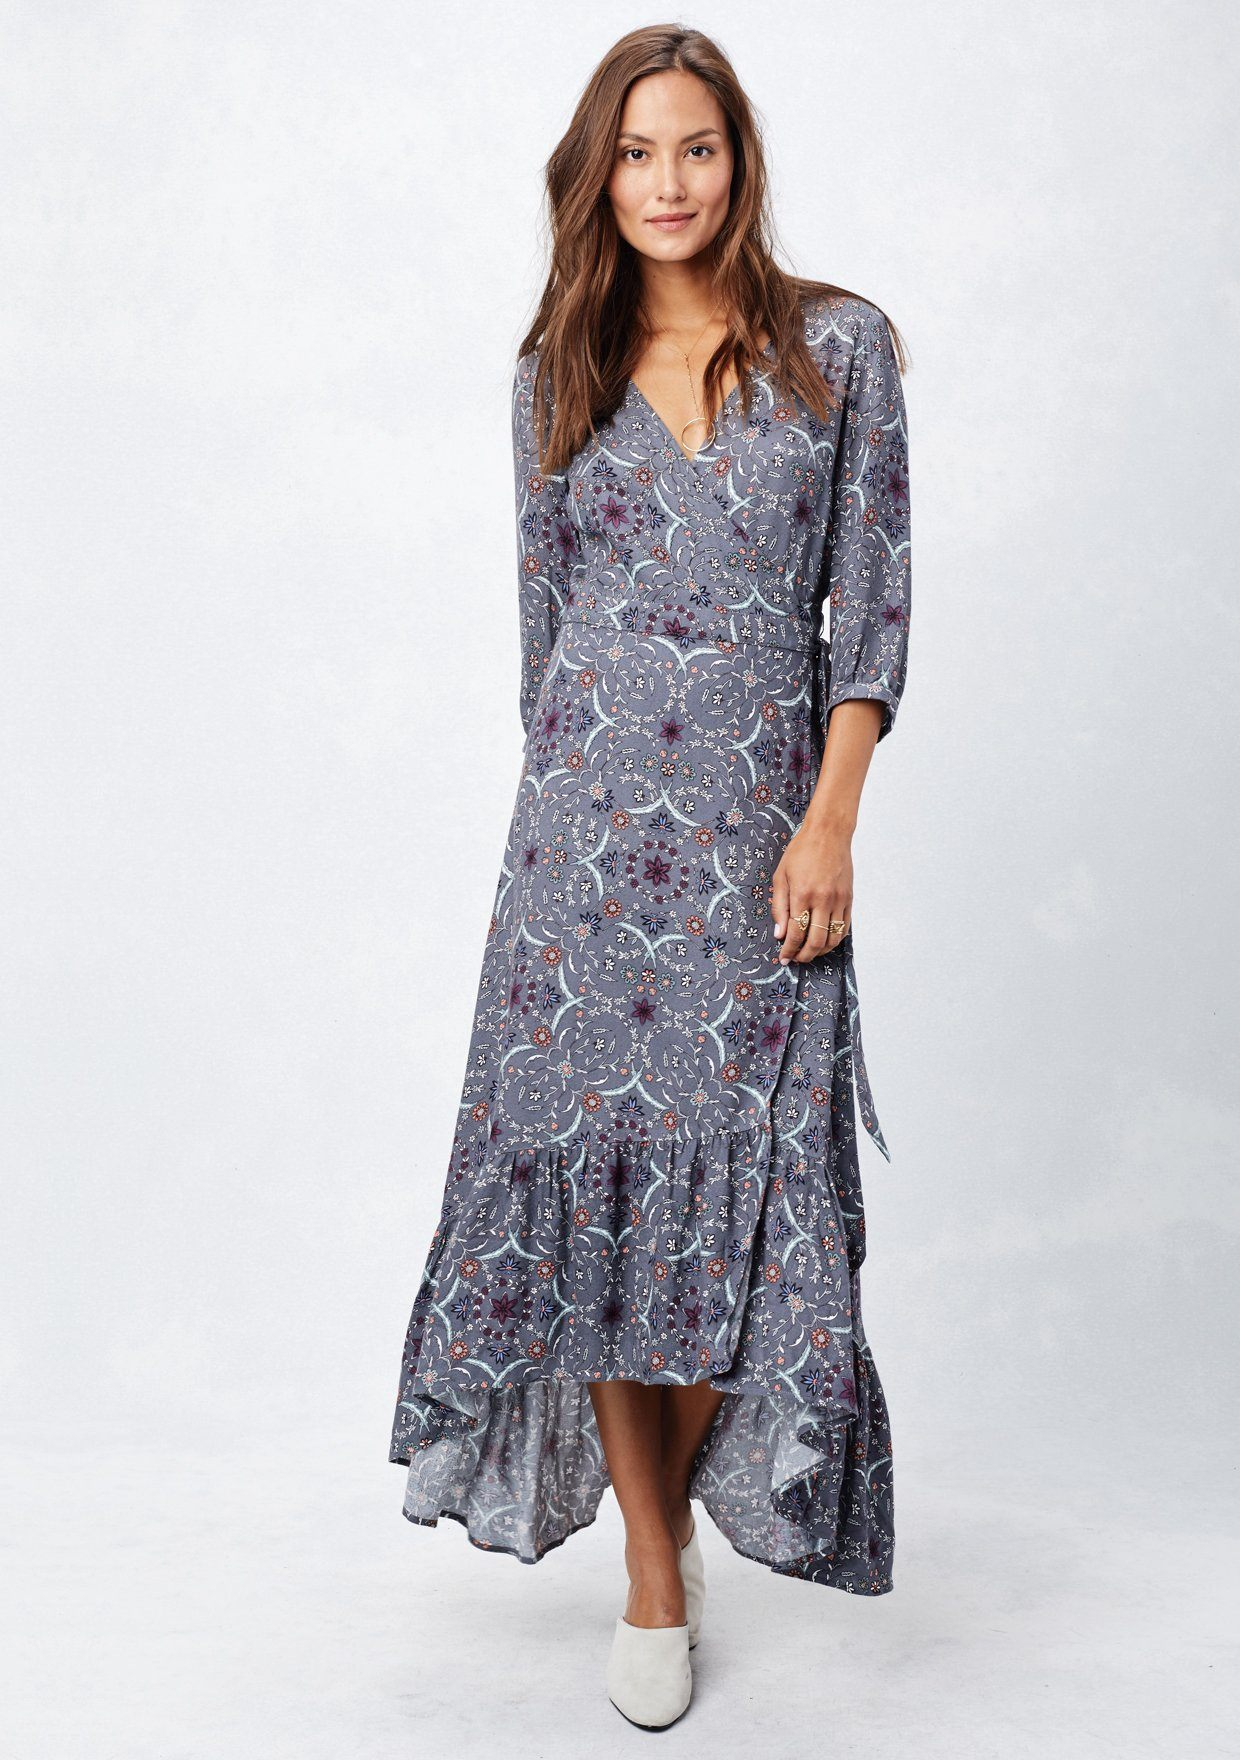 0409803d9f2c Elegant Boho Wrap Dress